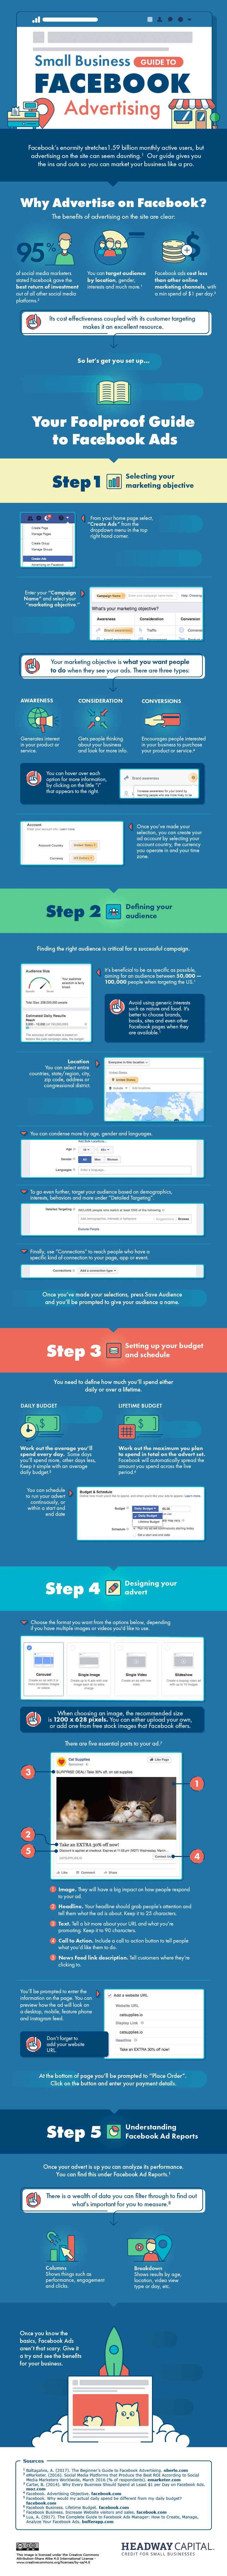 A Small-Business Guide to Facebook Advertising (Infographic)